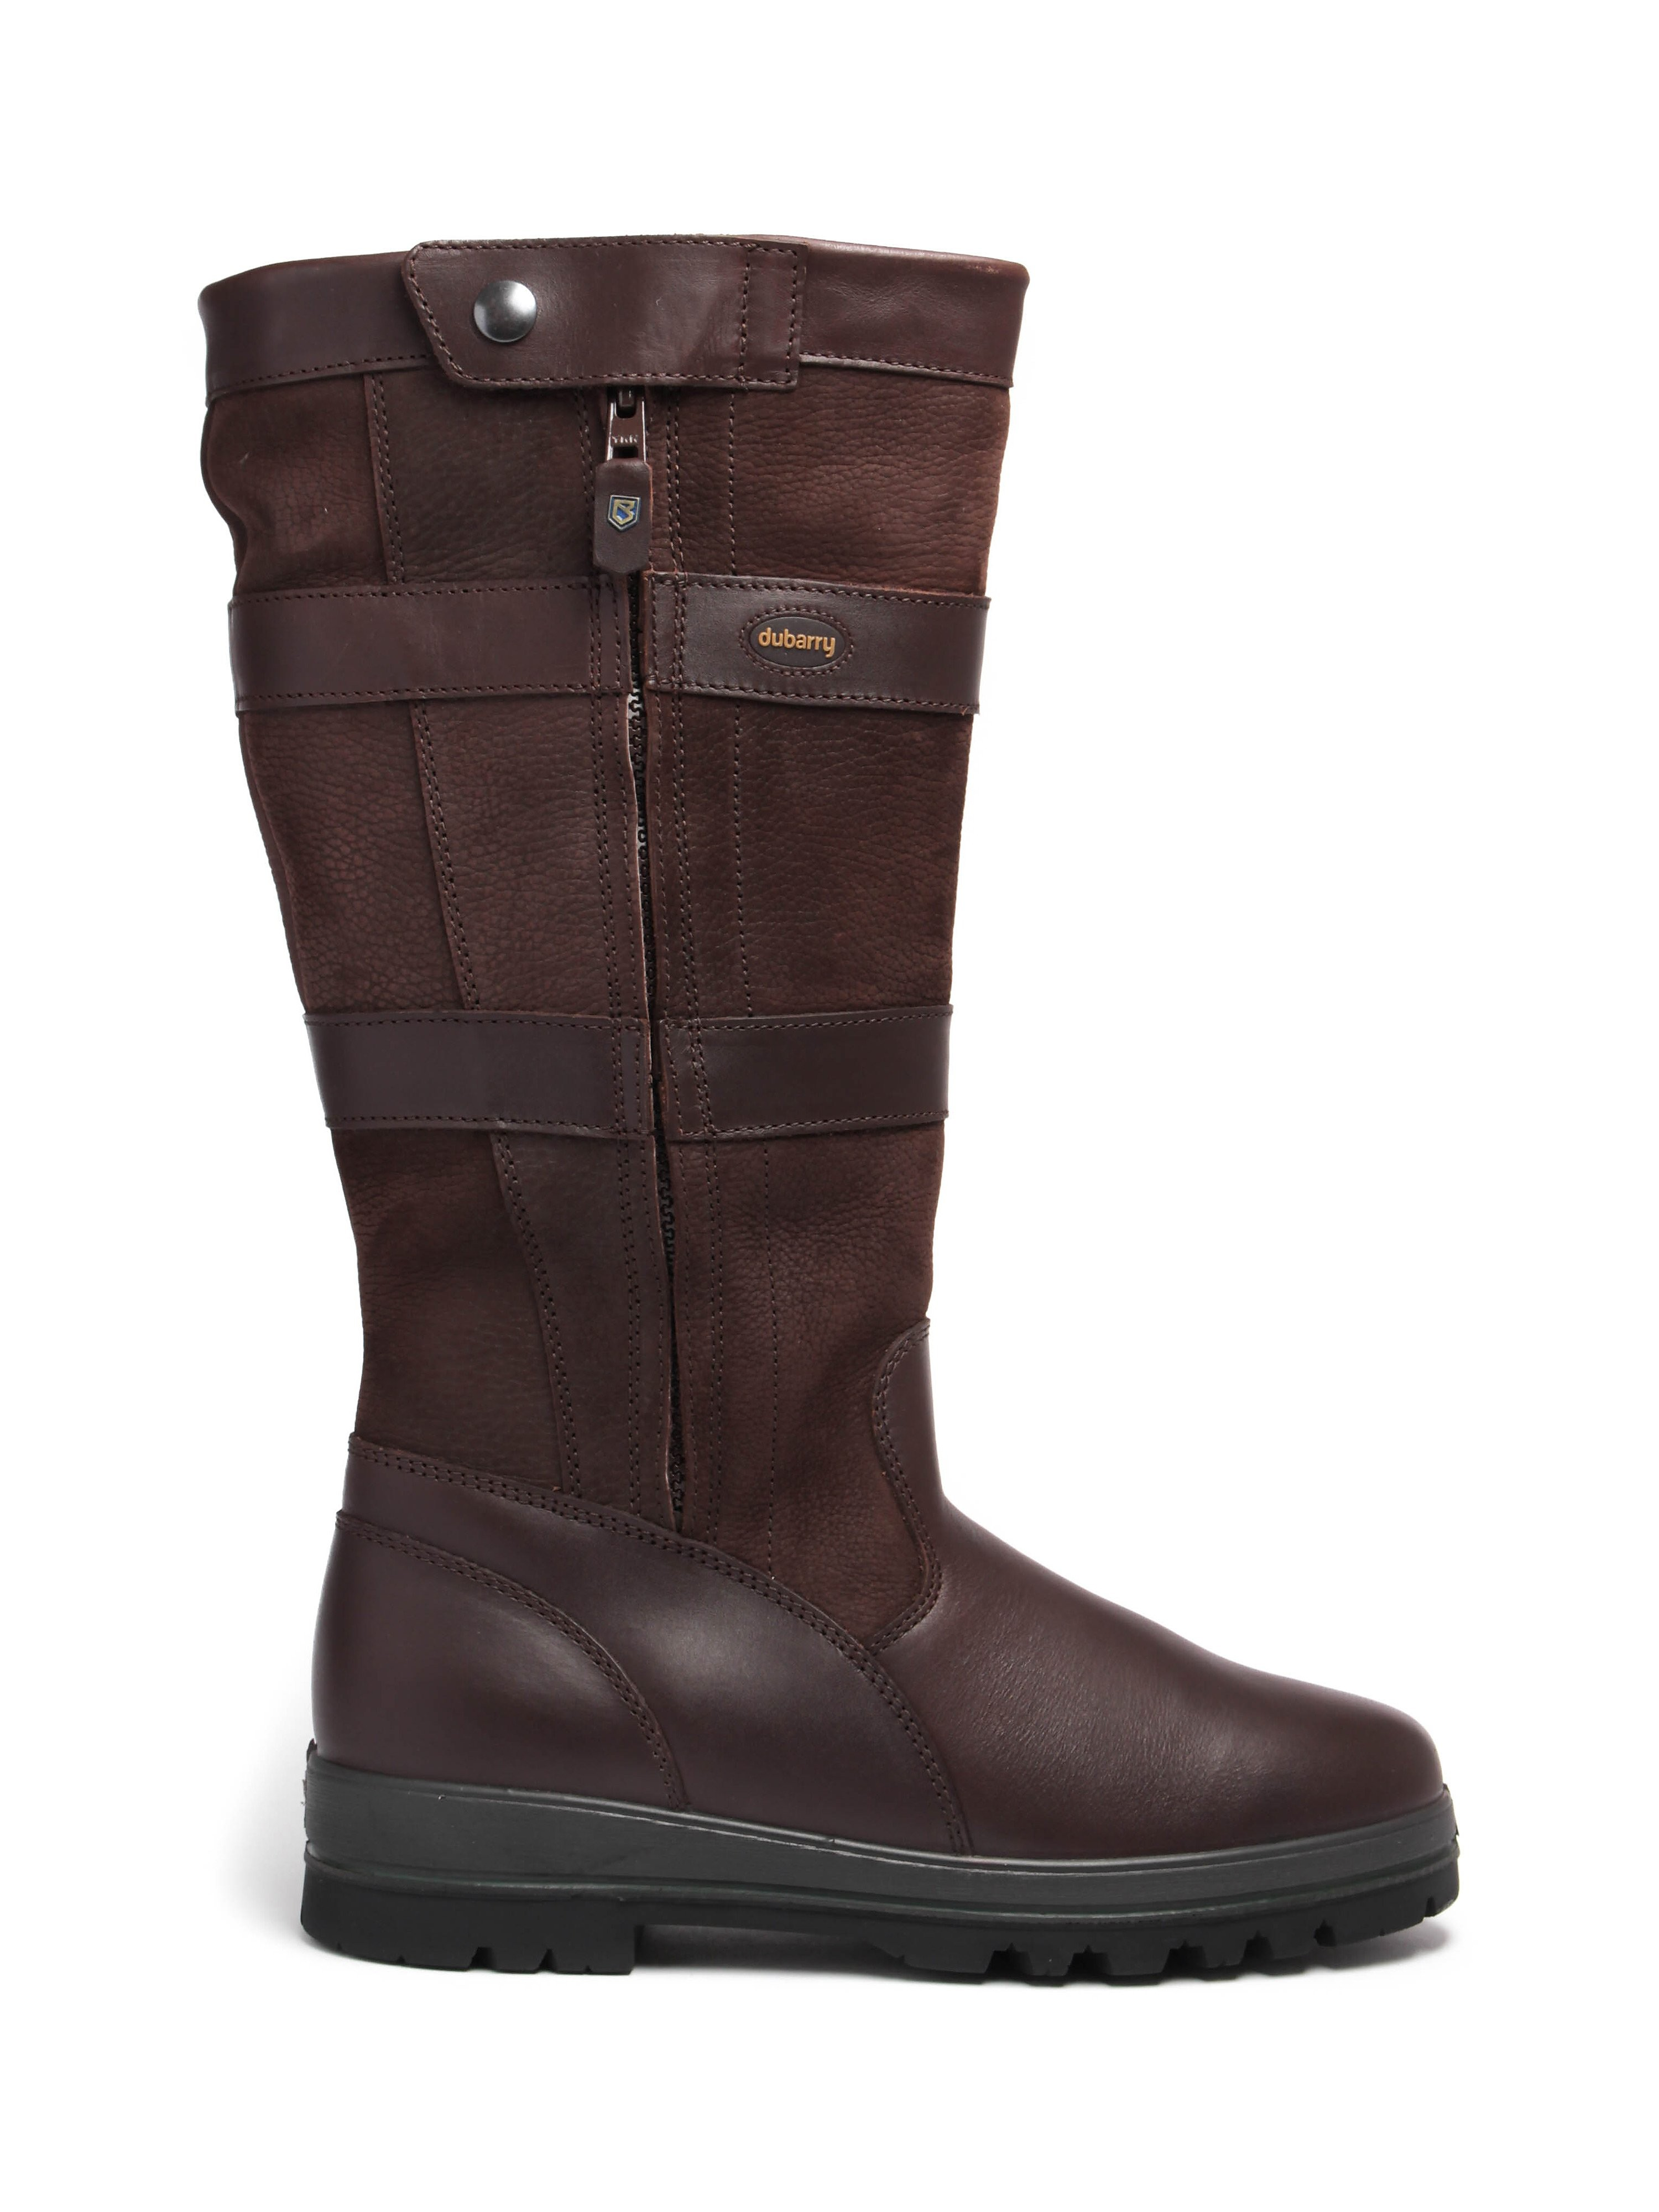 Dubarry Men's Wexford Tall Leather Boots - Java